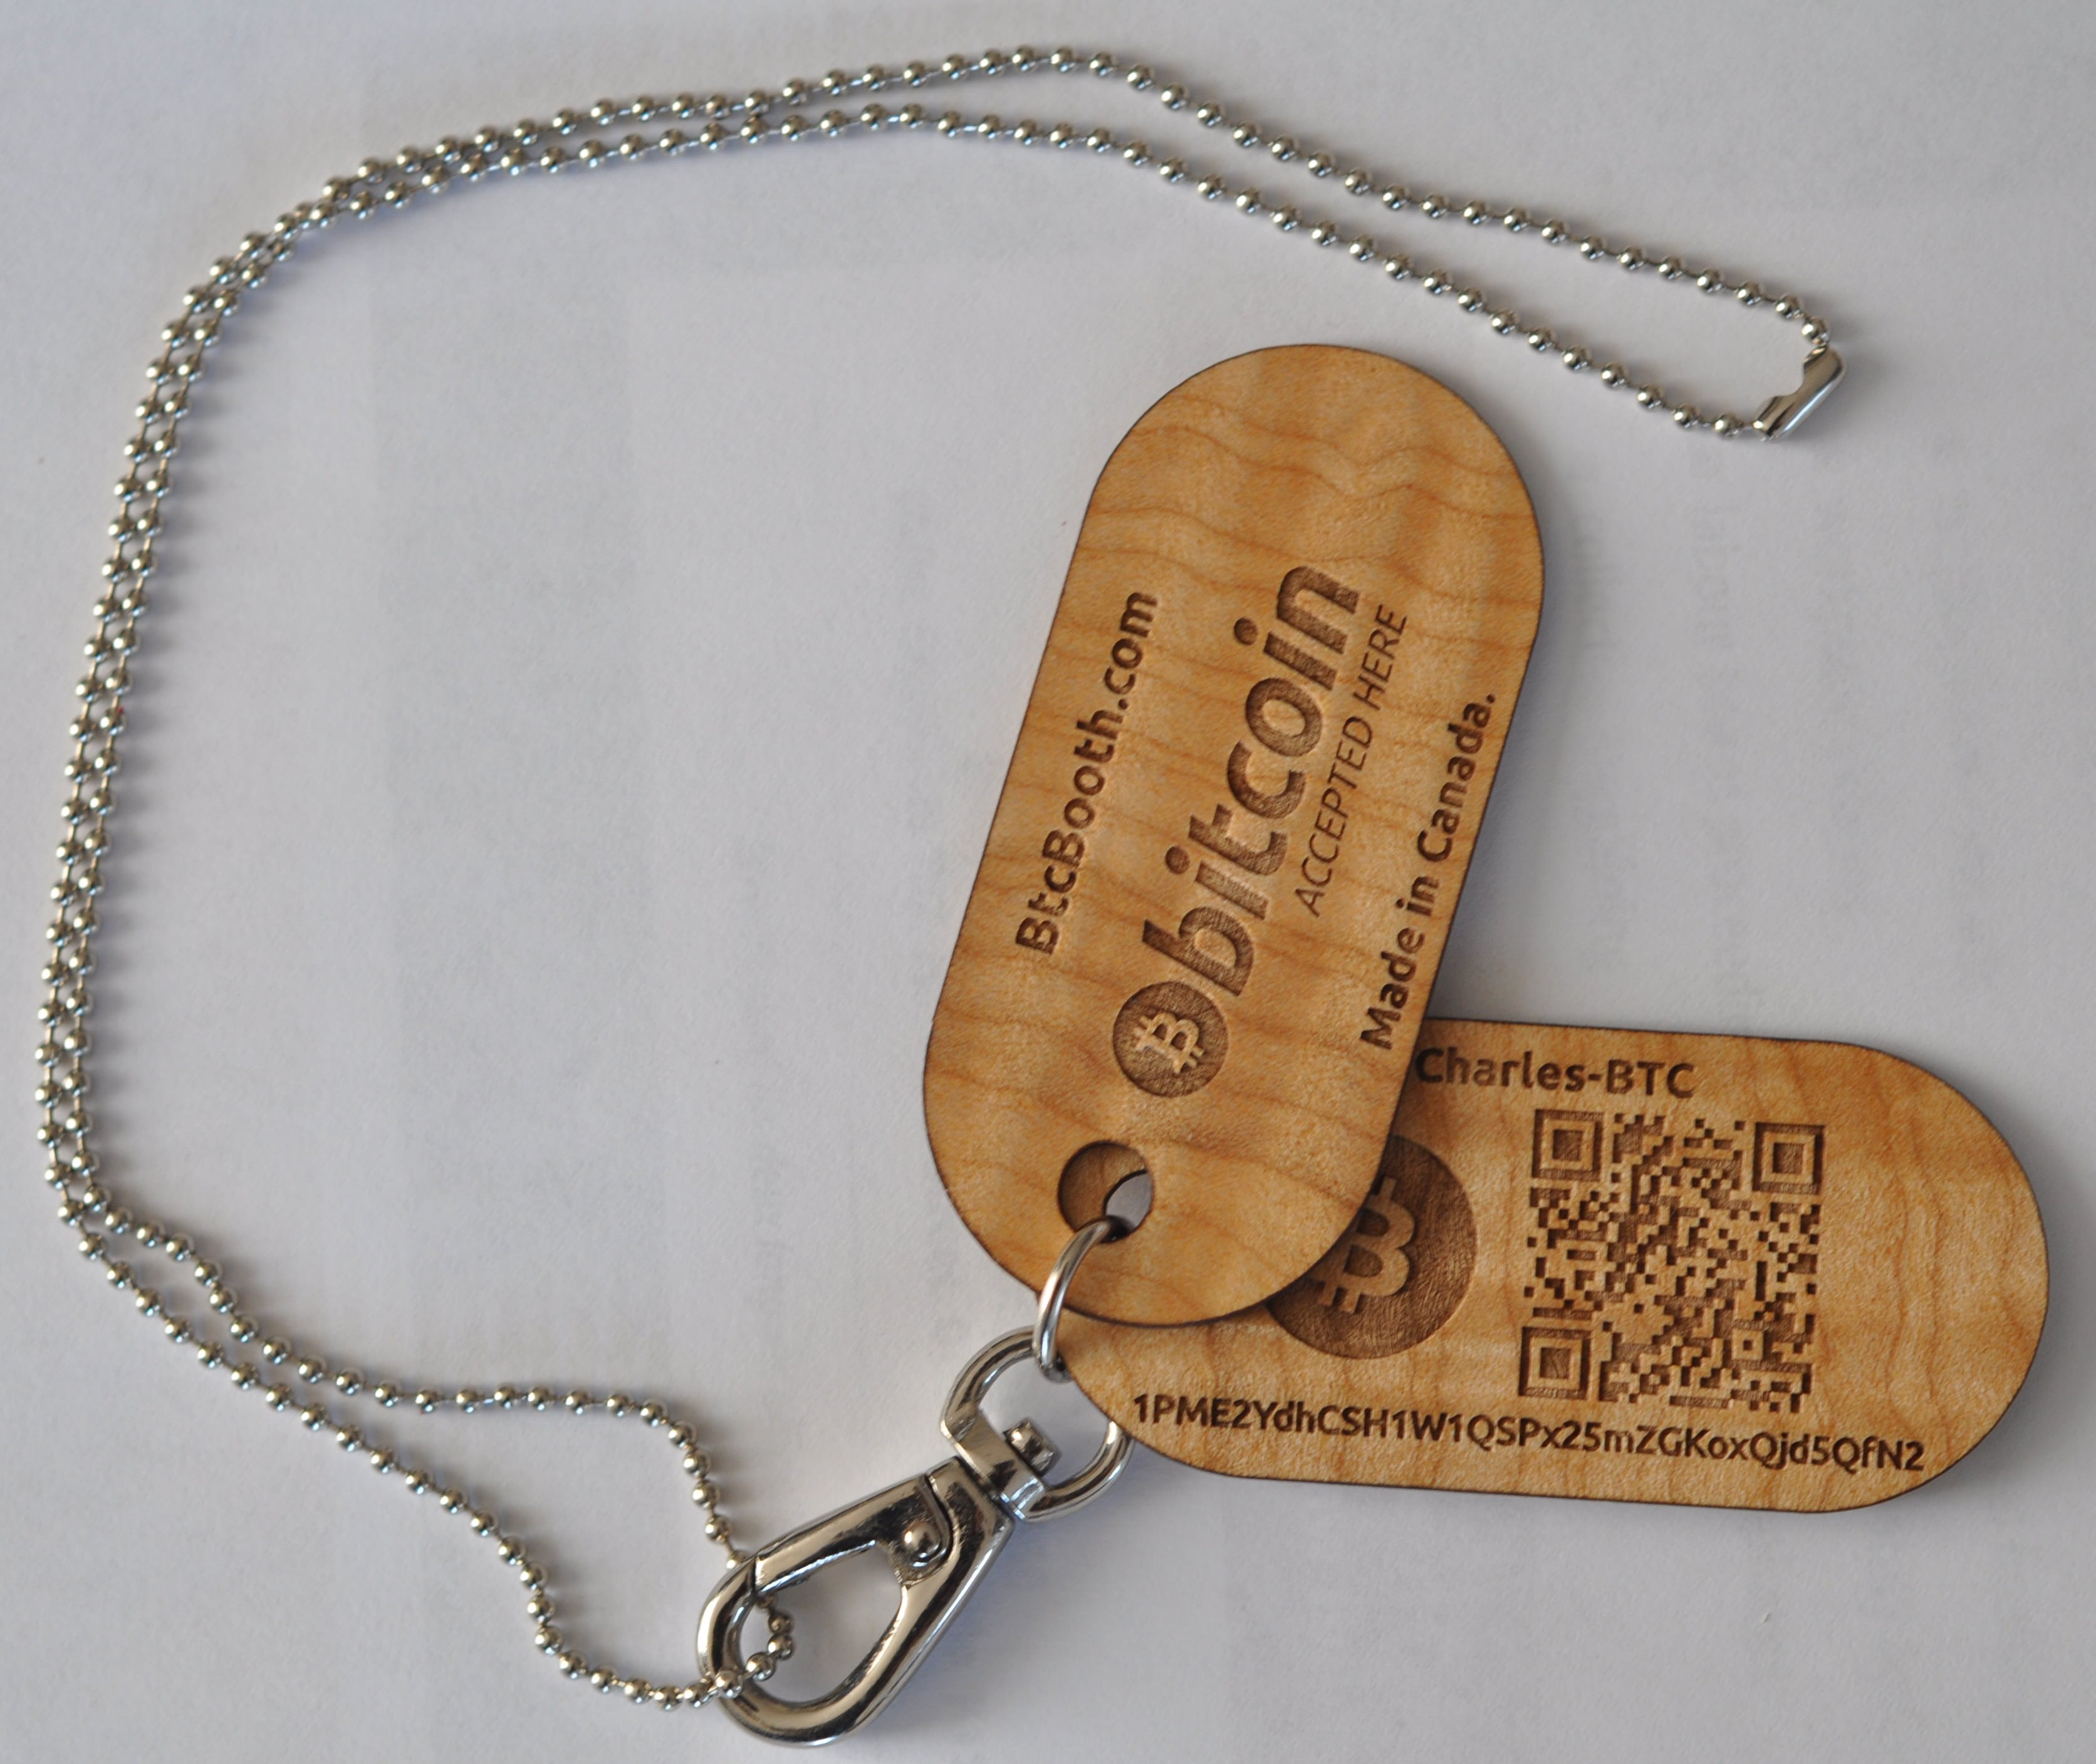 The wood wallets are tags, which allows the user to wear it around their neck.